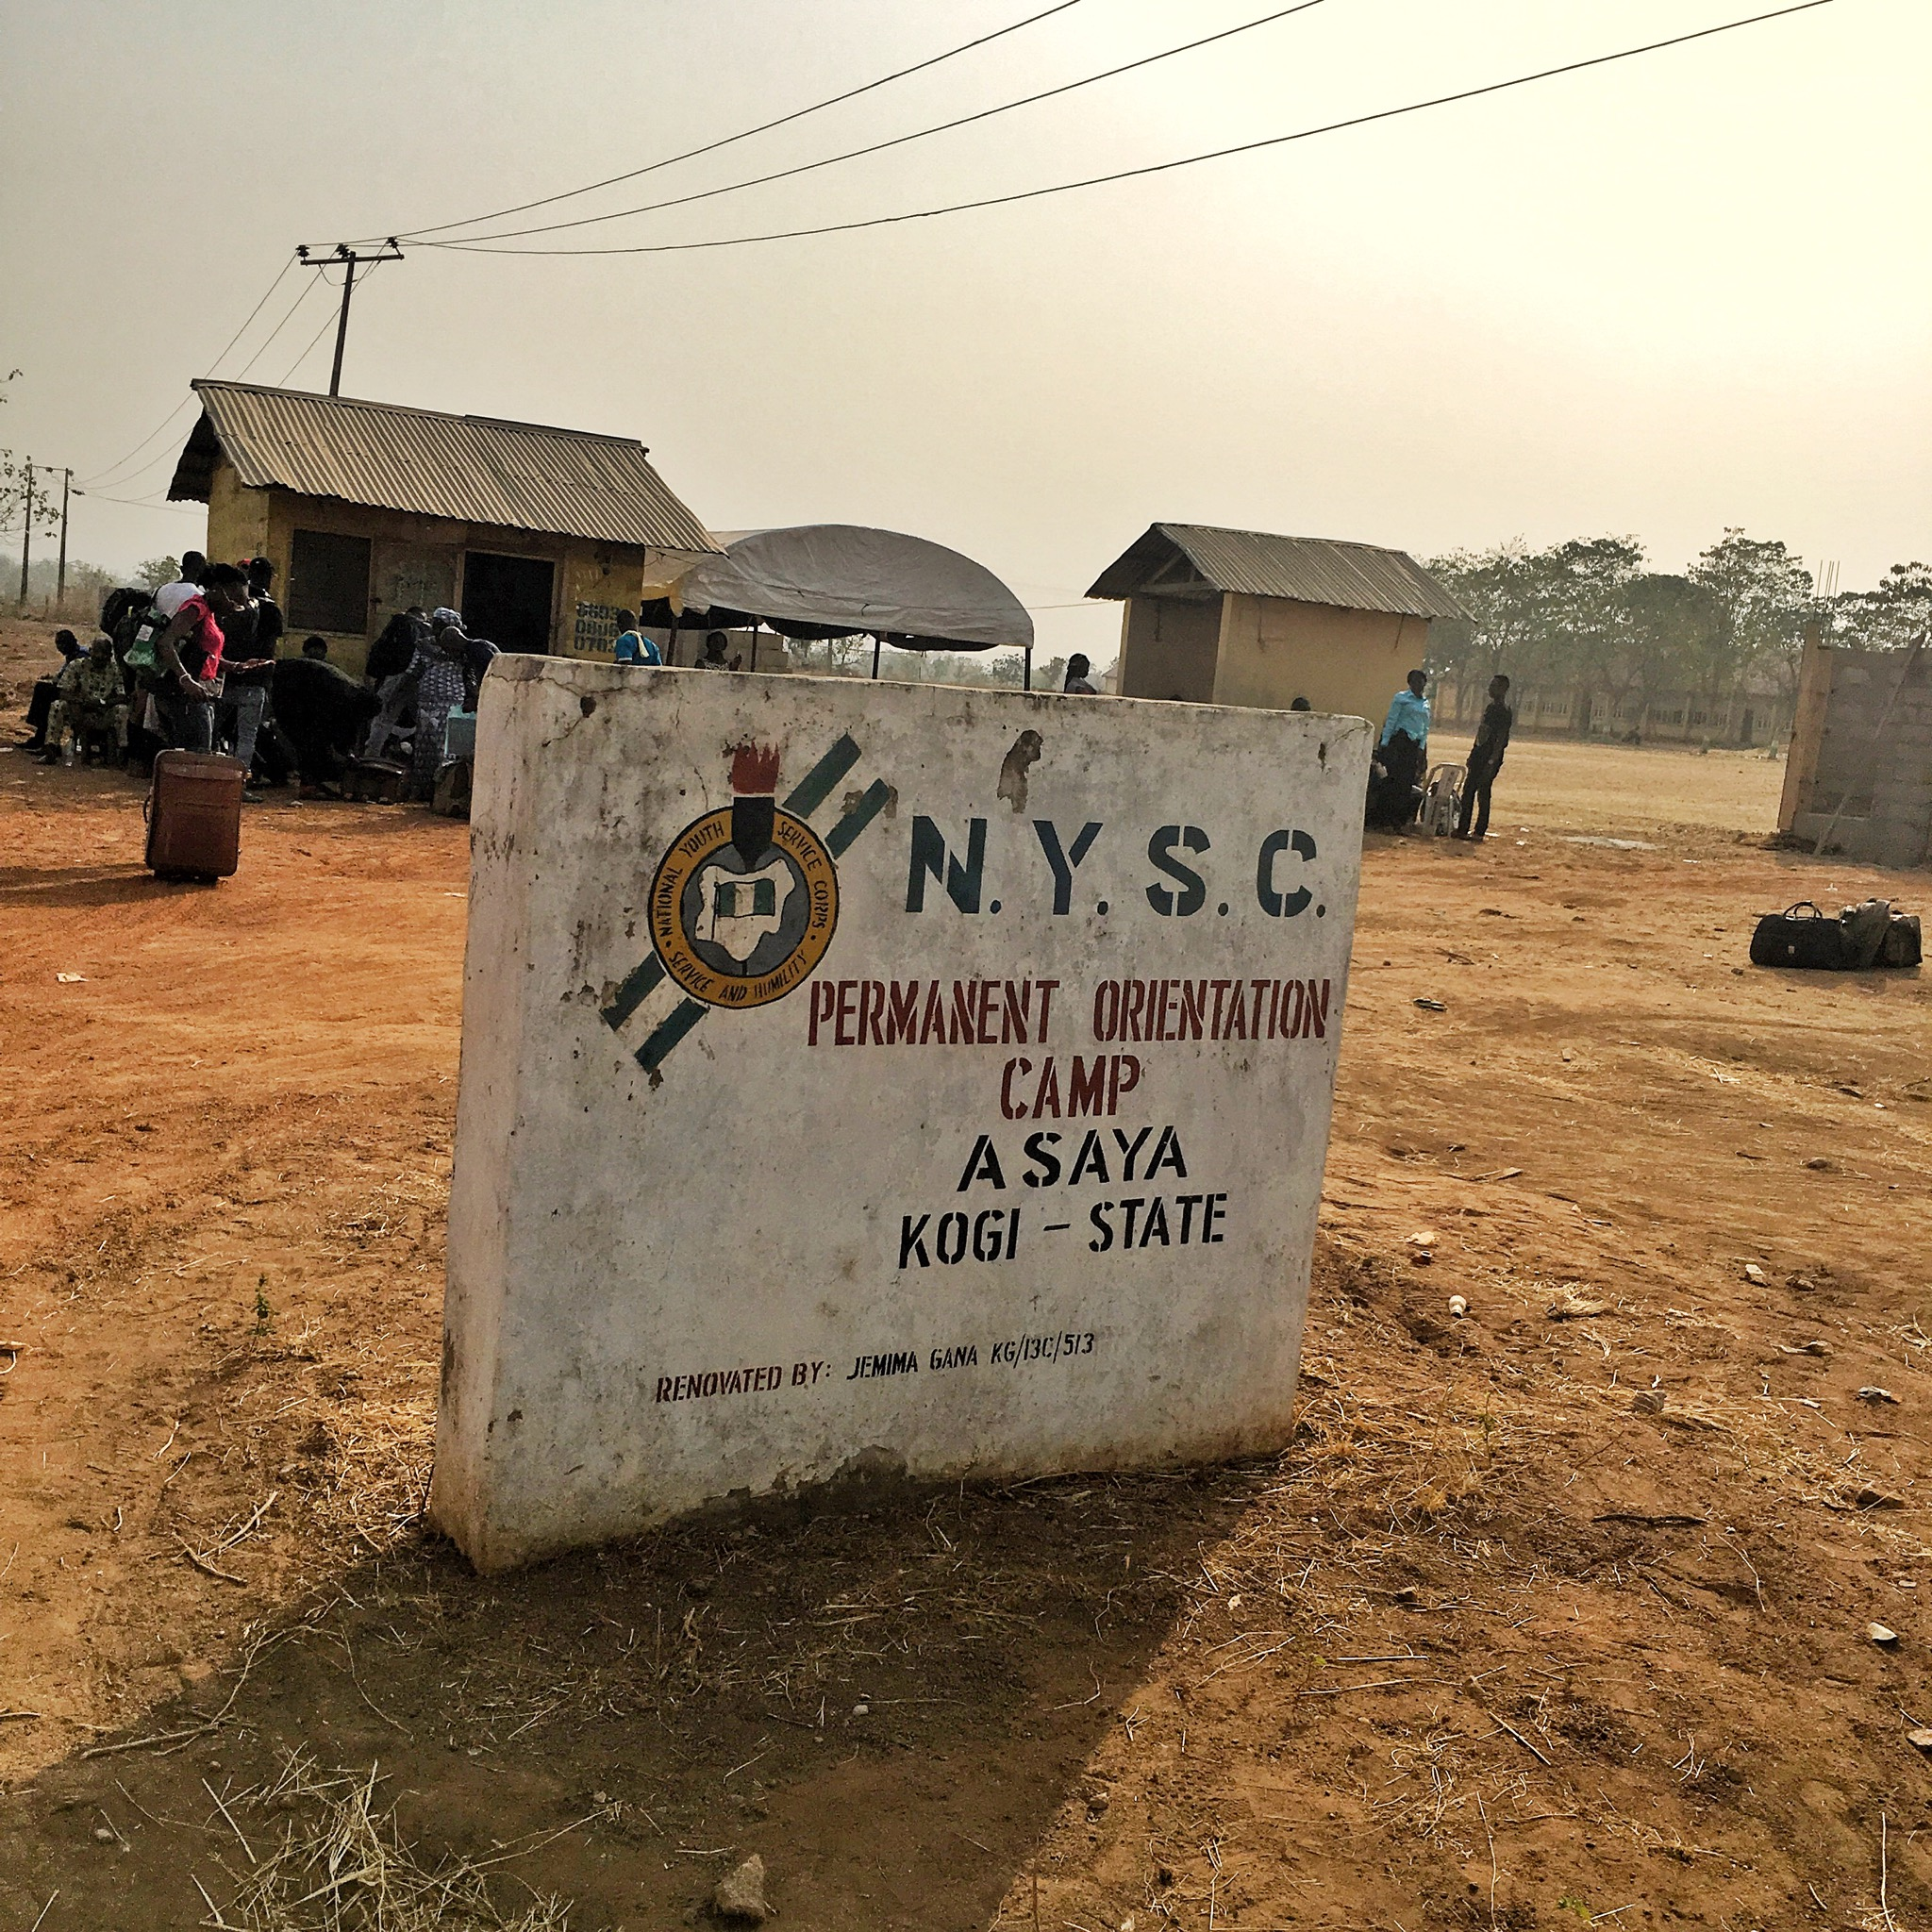 my nysc camp experience - asaya orientation camp sign